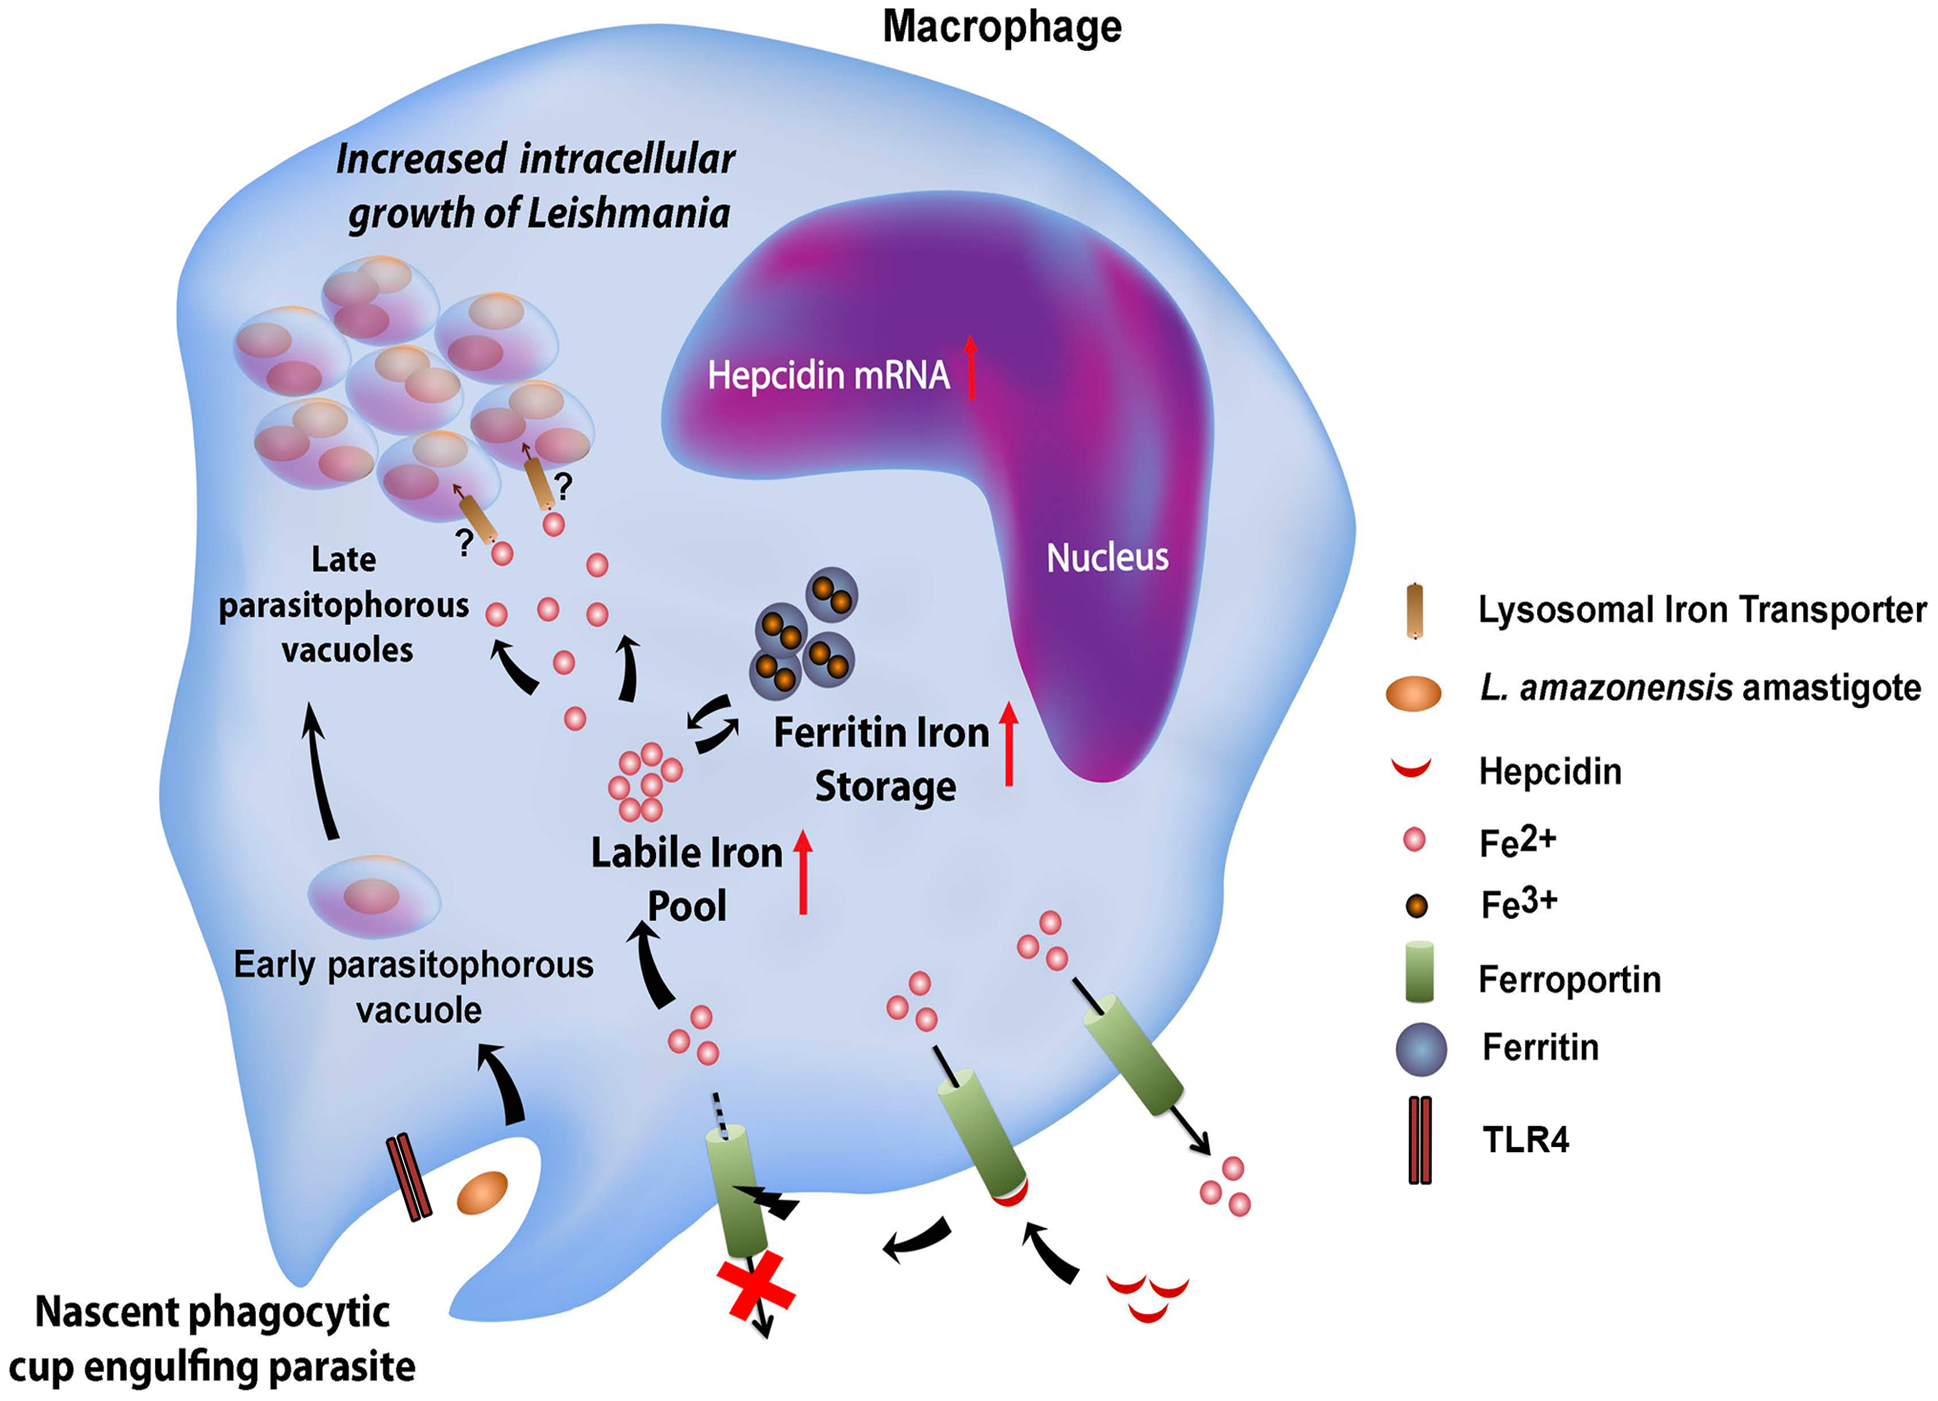 Proposed model for the <i>L. amazonensis</i>-induced downregulation of ferroportin expression in macrophages.